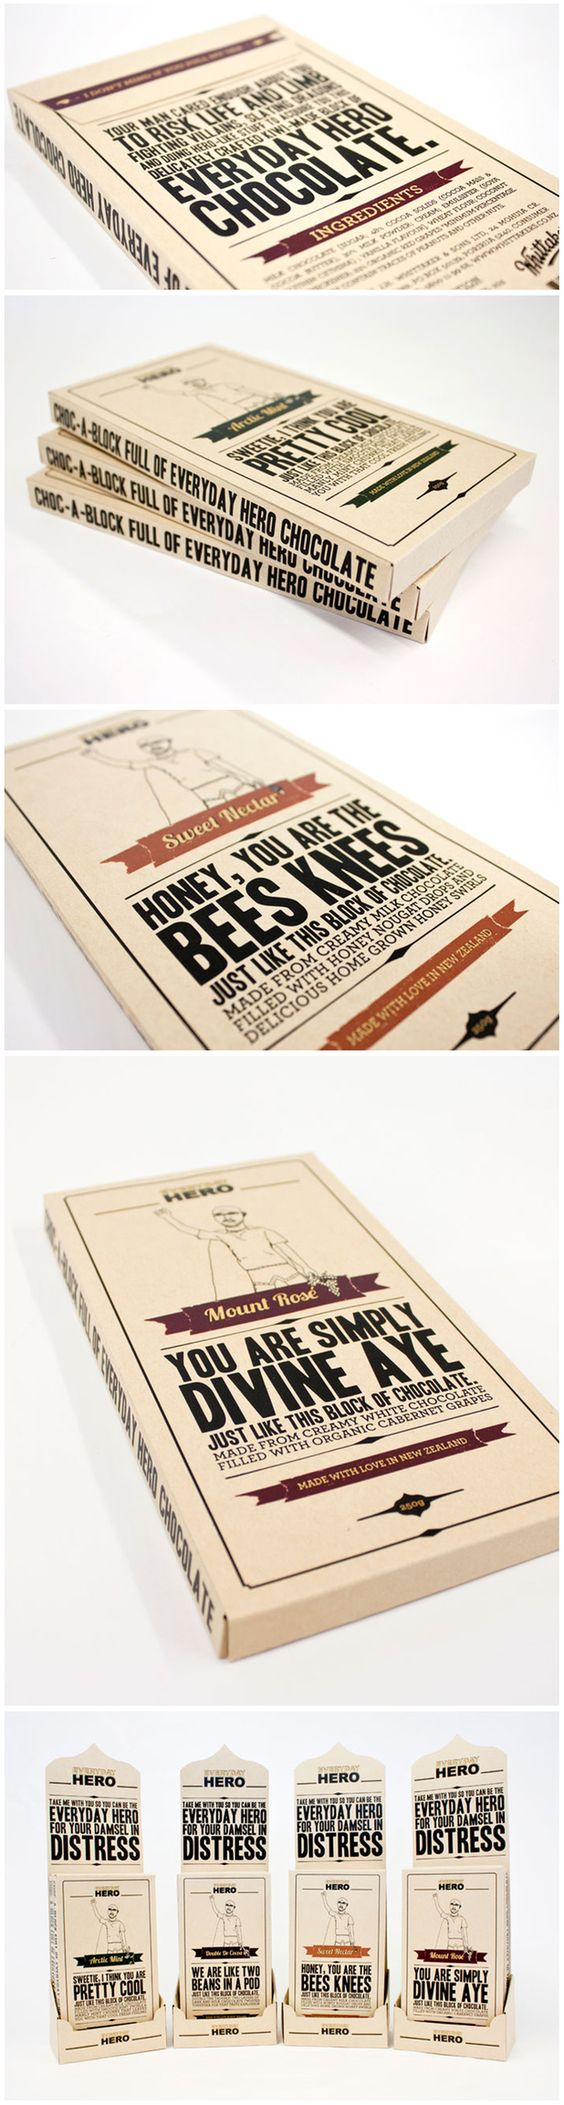 I would certainly buy some chocolate in order to get this awesome typographic package.